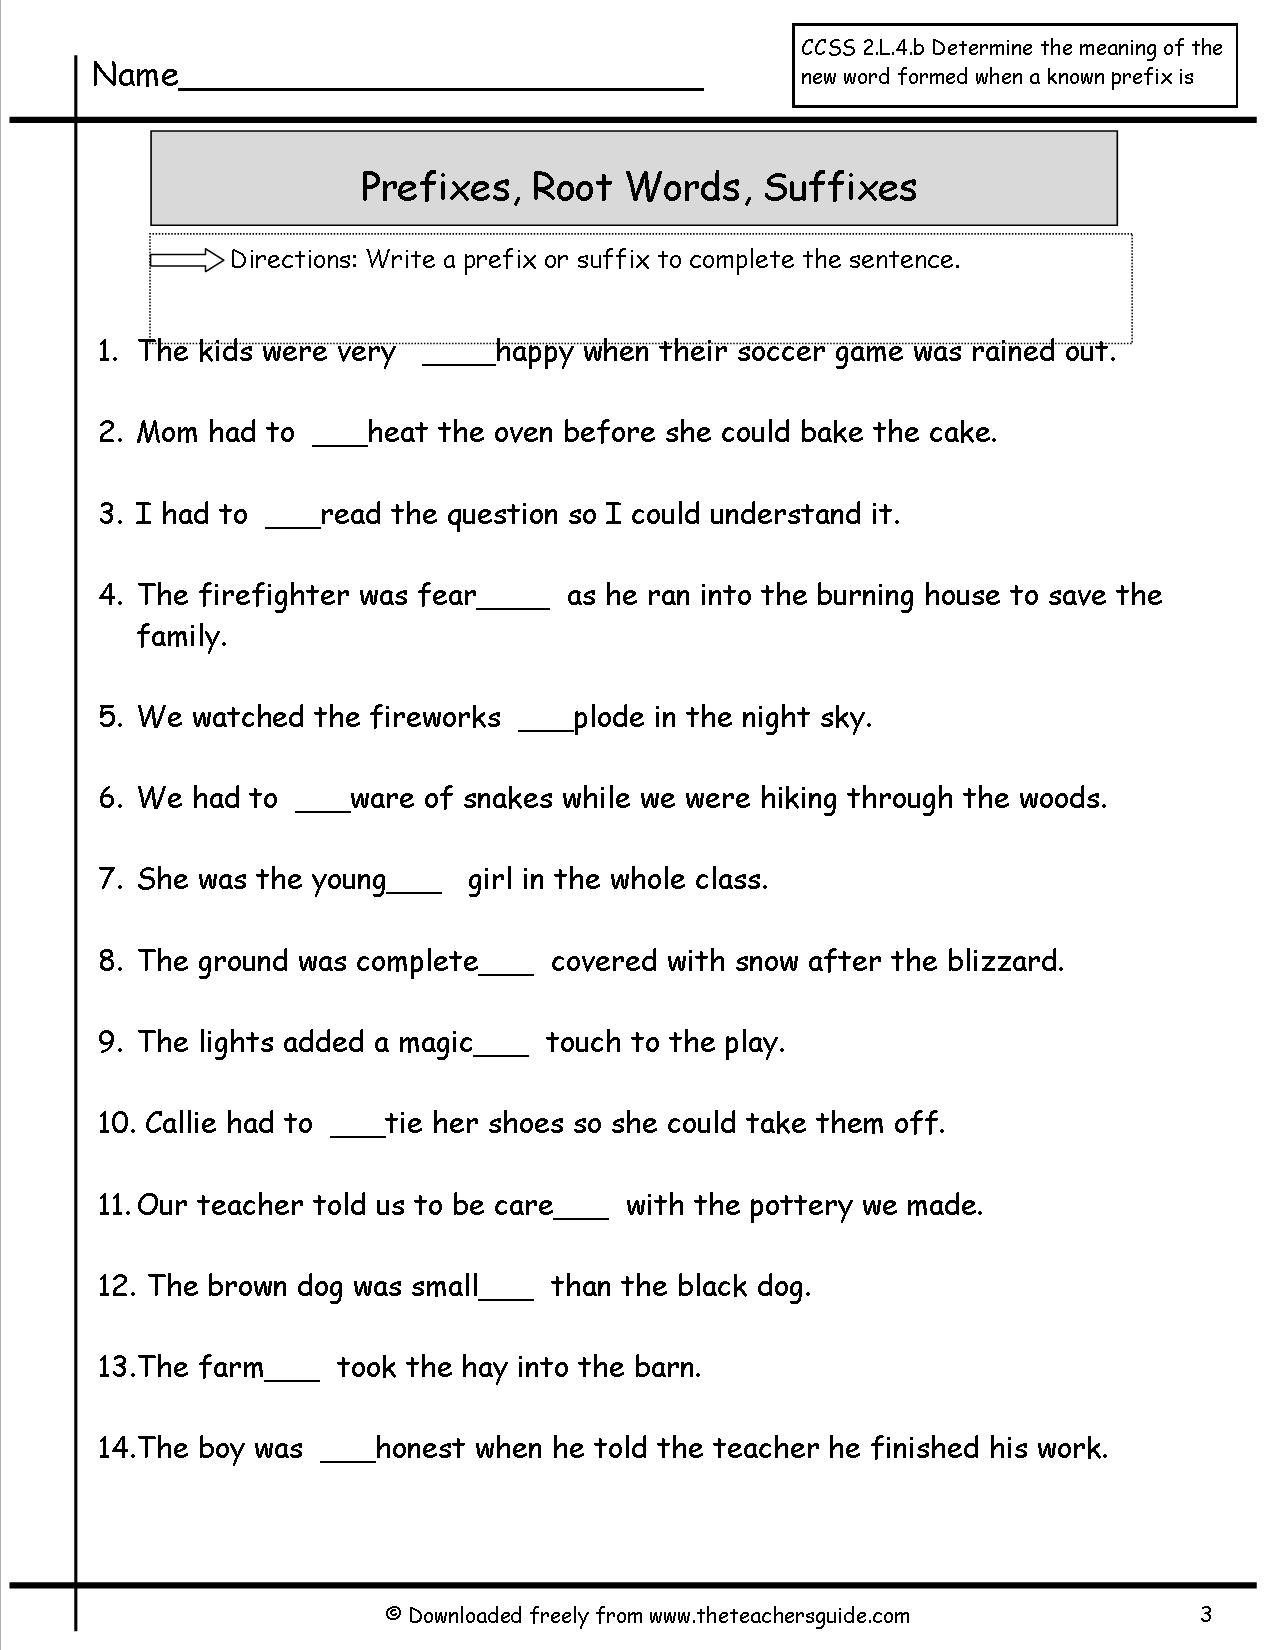 Prefix Suffix Worksheets 3rd Grade Awesome Prefixes and Suffixes Worksheet